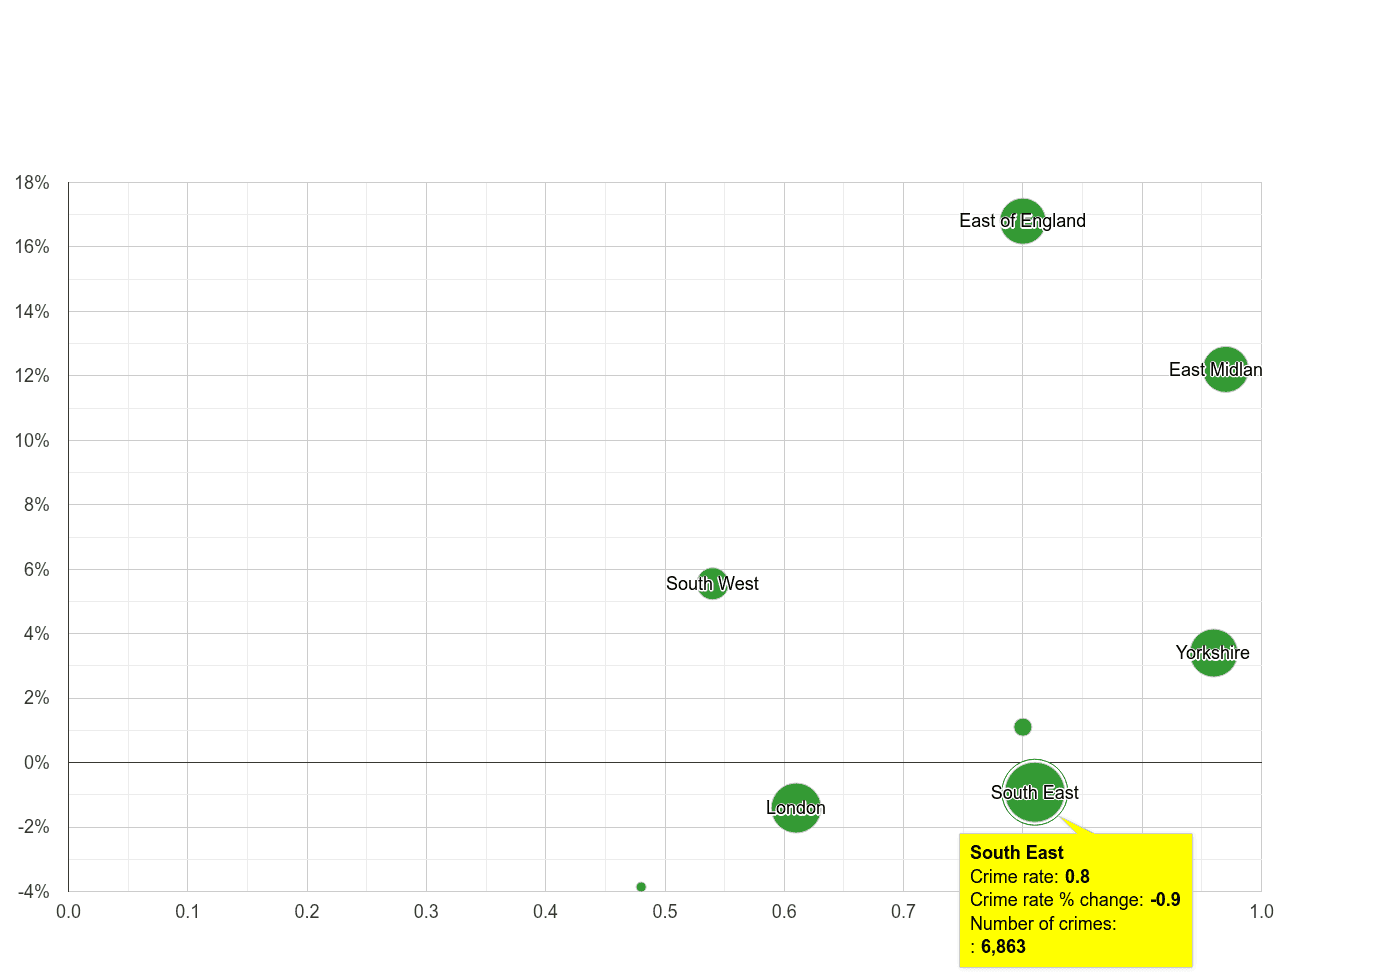 South East possession of weapons crime rate compared to other regions